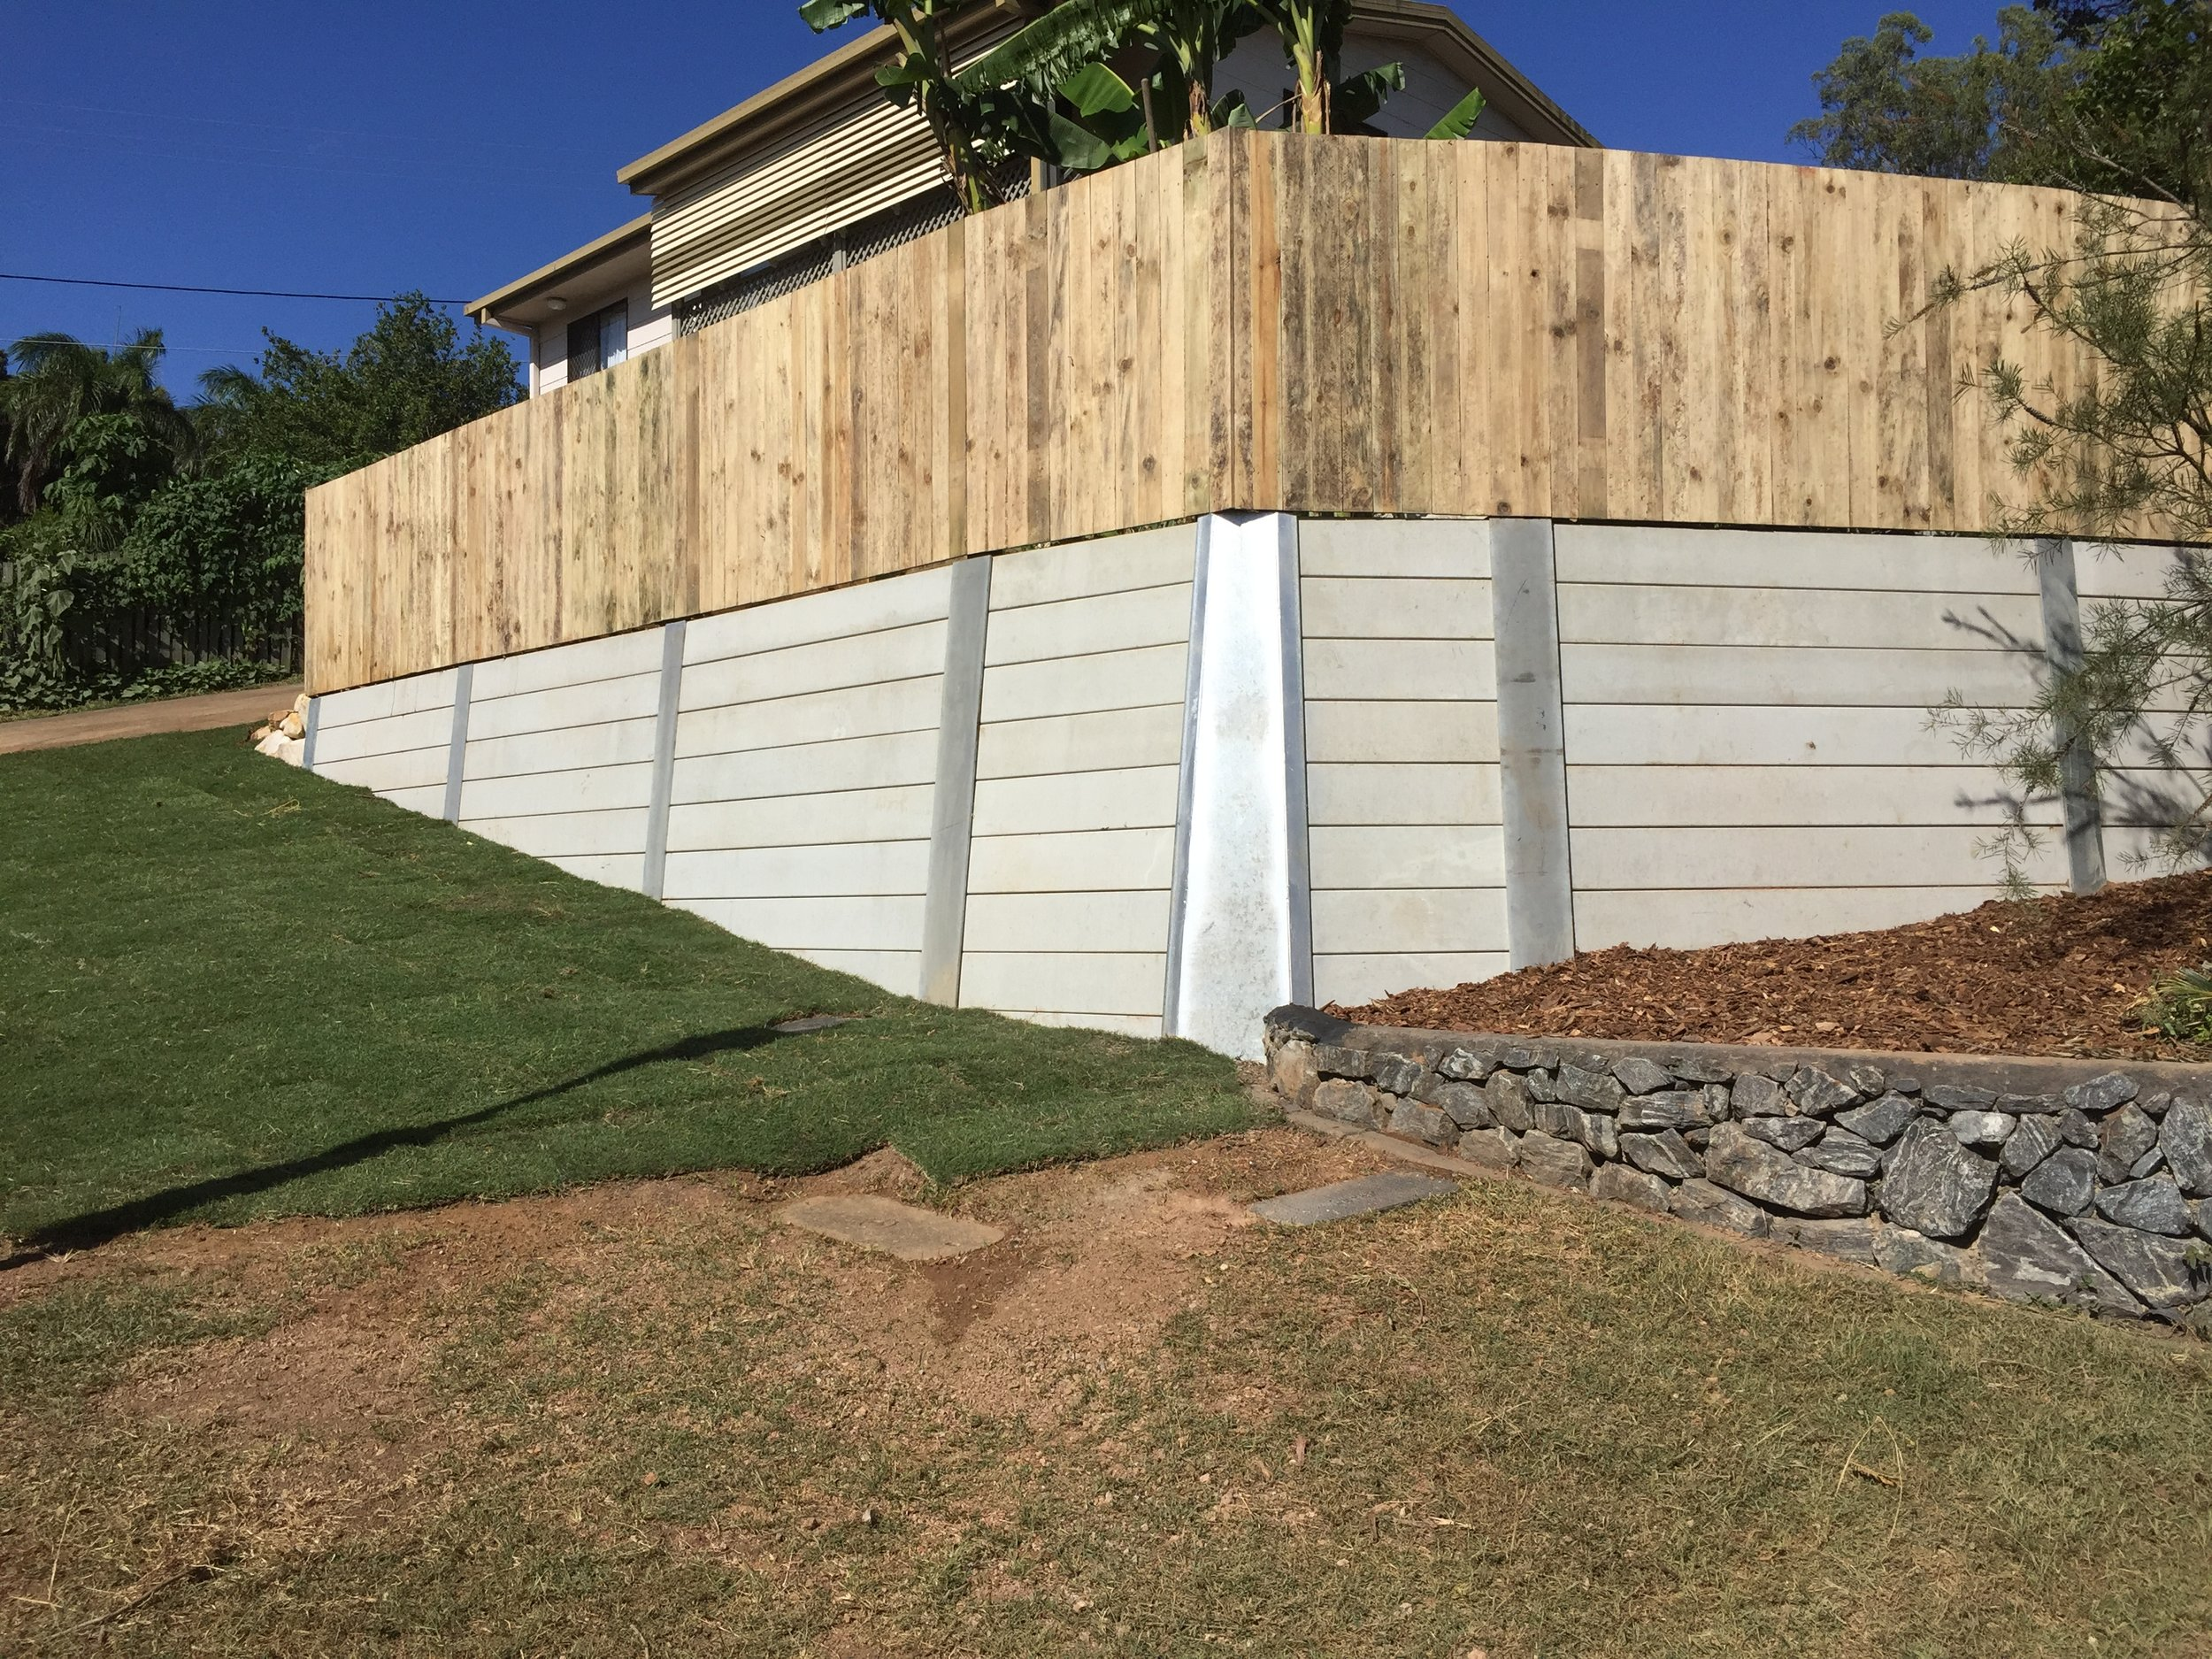 Retaining Walls - By Fassifern having over 33 years experience in landscaping, one of our specialties is retaining walls. Concrete sleeper, Blocks, Sandstone and Wood Retaining Walls are just a few options.